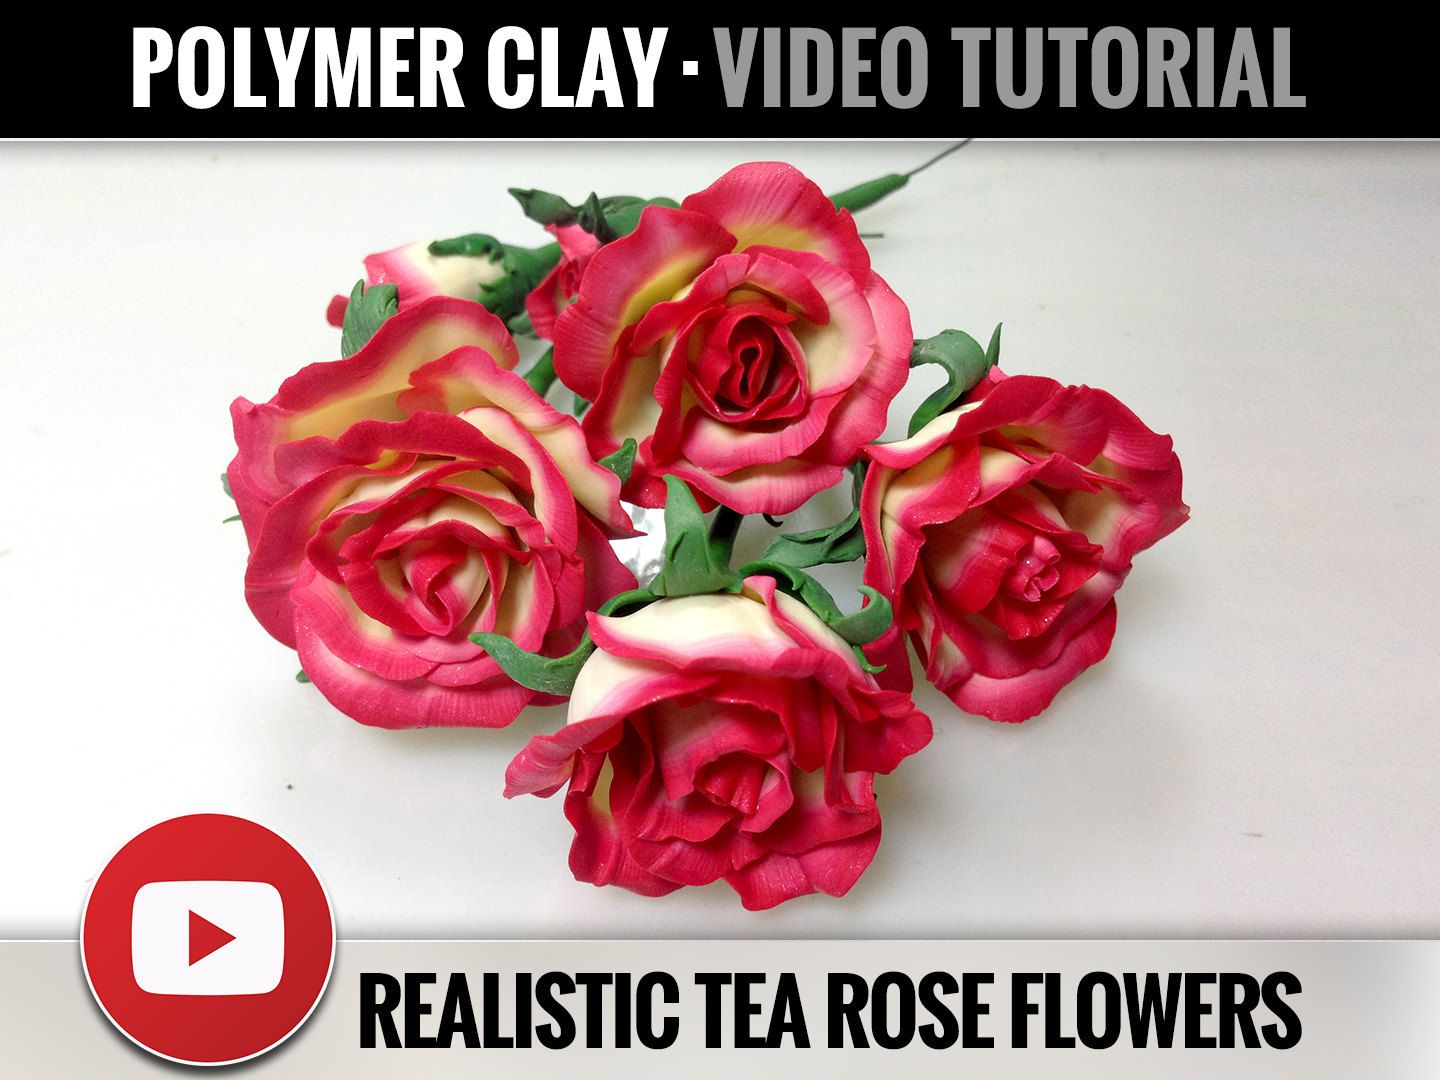 Video Tutorial - Realistic Tea Rose Flower from Polymer Clay Tutorials - Real Tea Rose Flowers - Step by Step Tutorial - Master Class - Fimo by SweetyBijou on Etsy